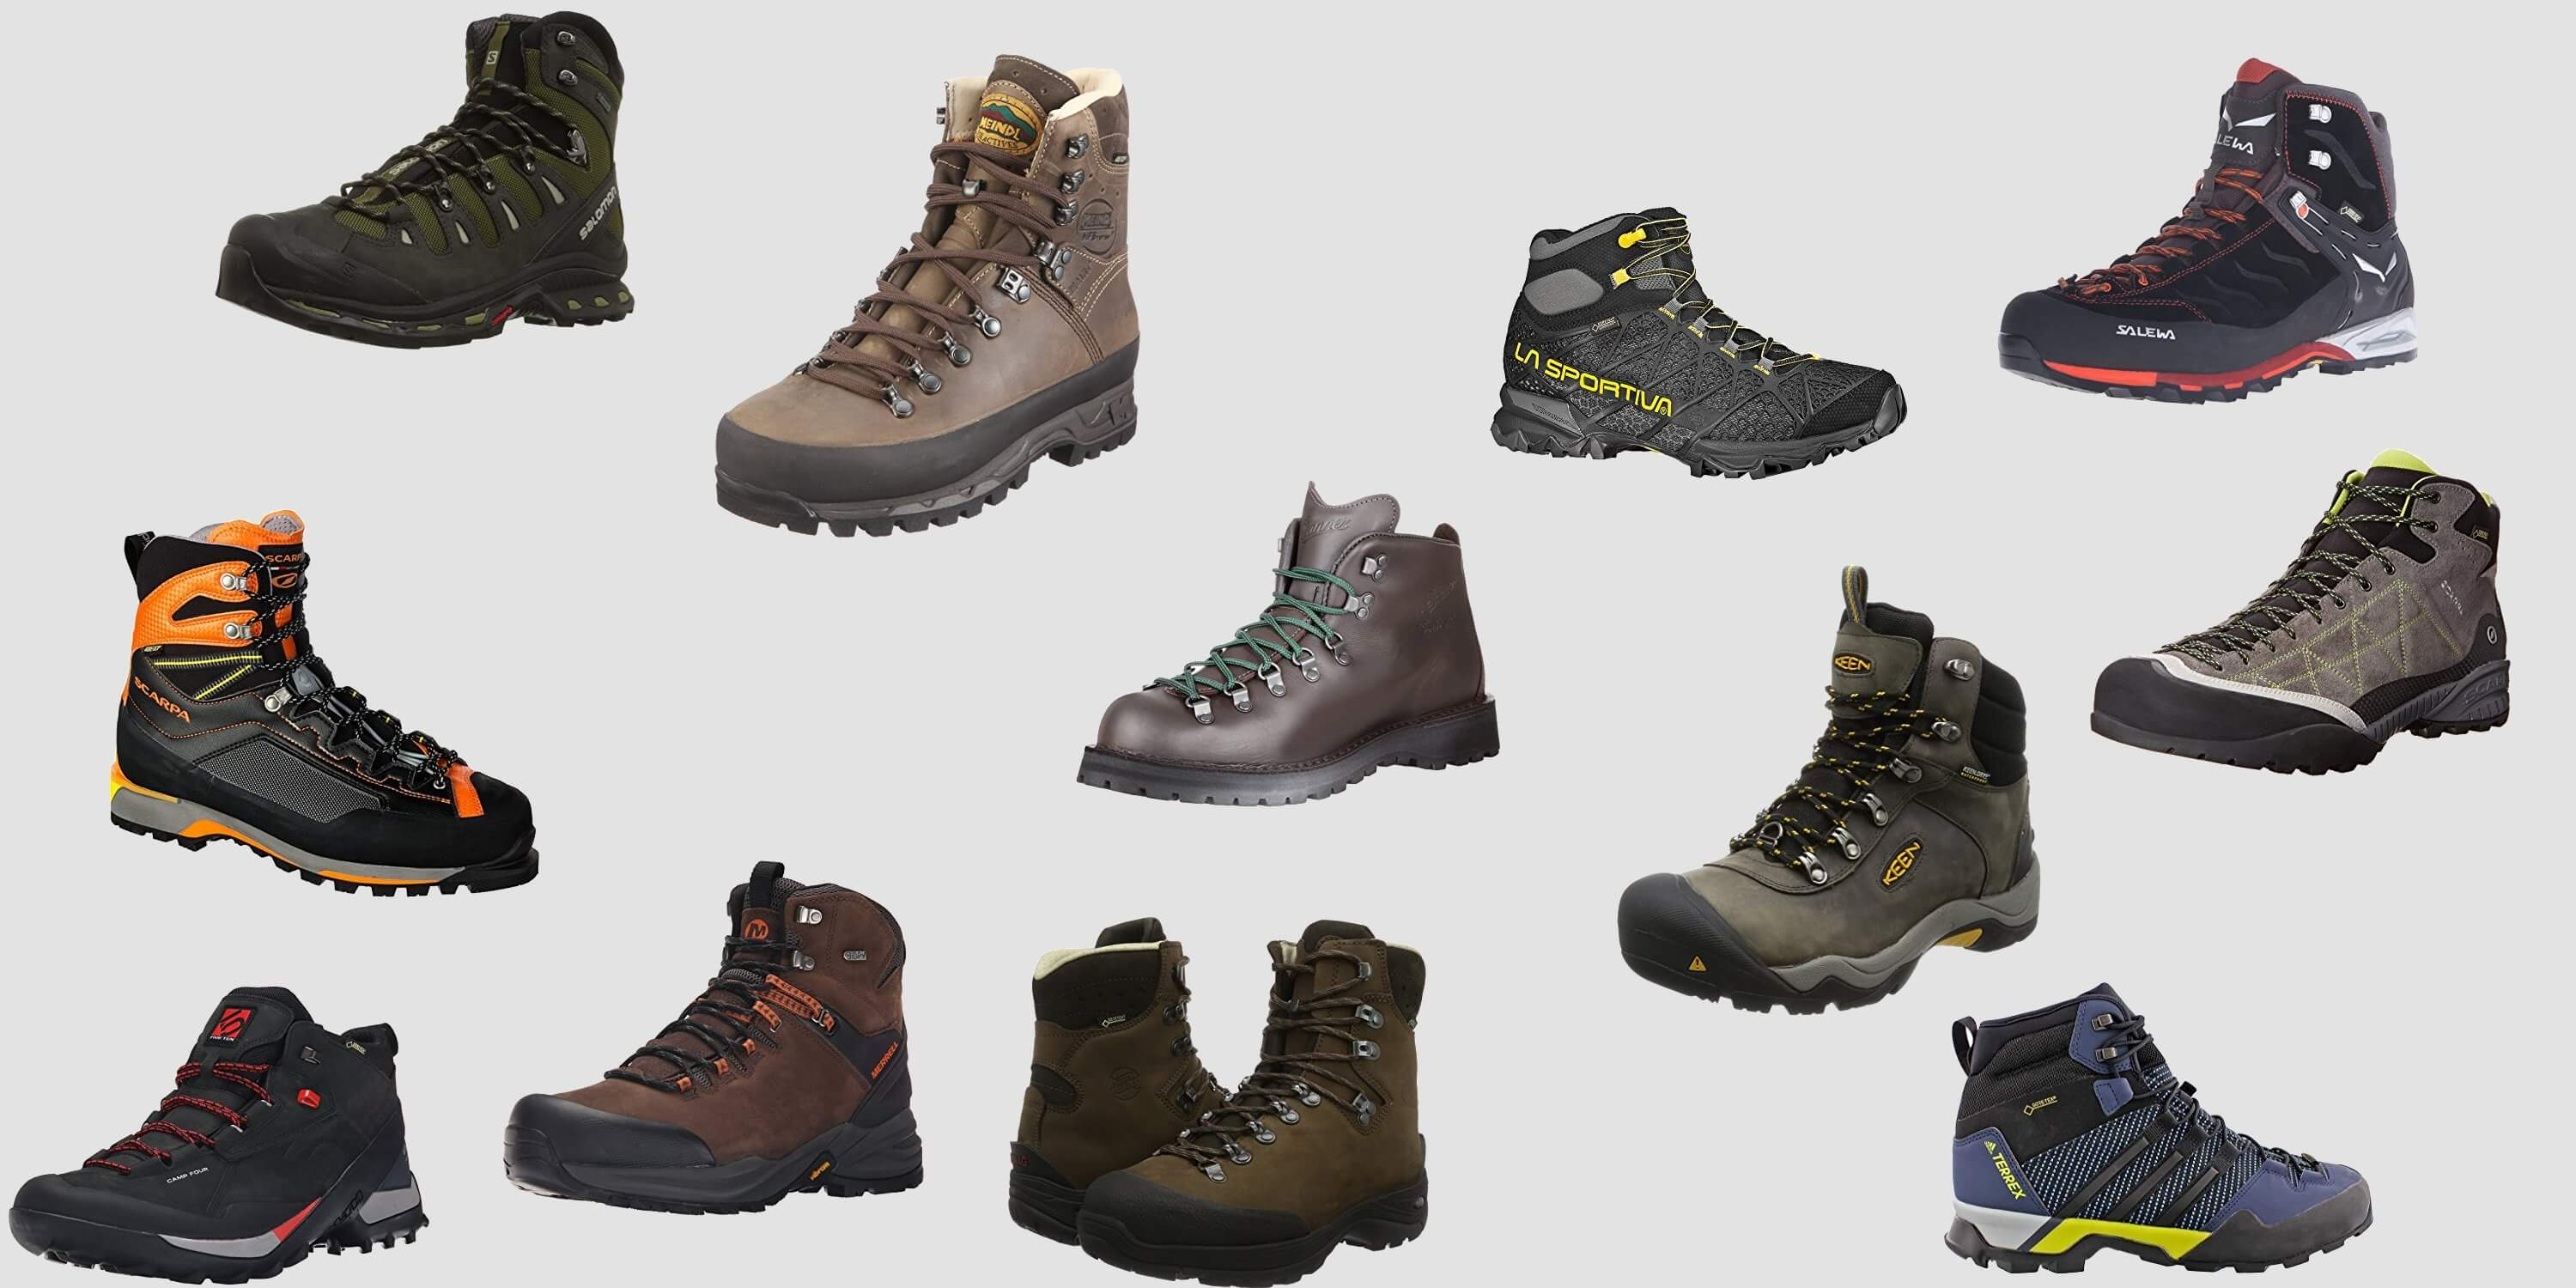 a1516b851cf The 27 Best Waterproof Hiking Boots For Men